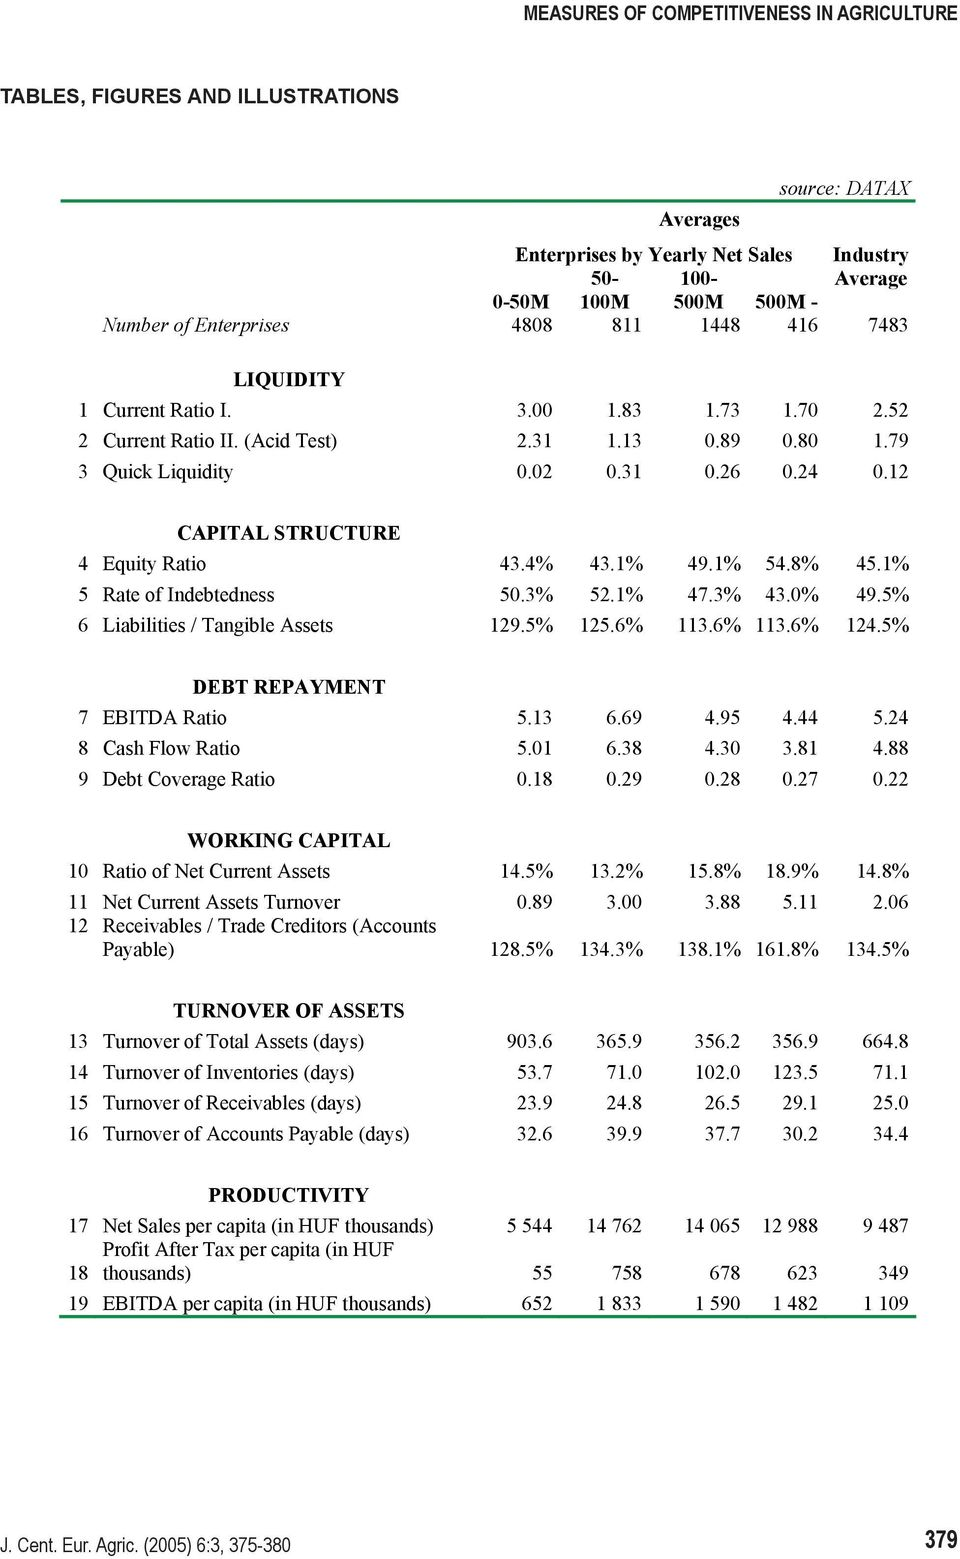 12 CAPITAL STRUCTURE 4 Equity Ratio 43.4% 43.1% 49.1% 54.8% 45.1% 5 Rate of Indebtedness 50.3% 52.1% 47.3% 43.0% 49.5% 6 Liabilities / Tangible Assets 129.5% 125.6% 113.6% 113.6% 124.